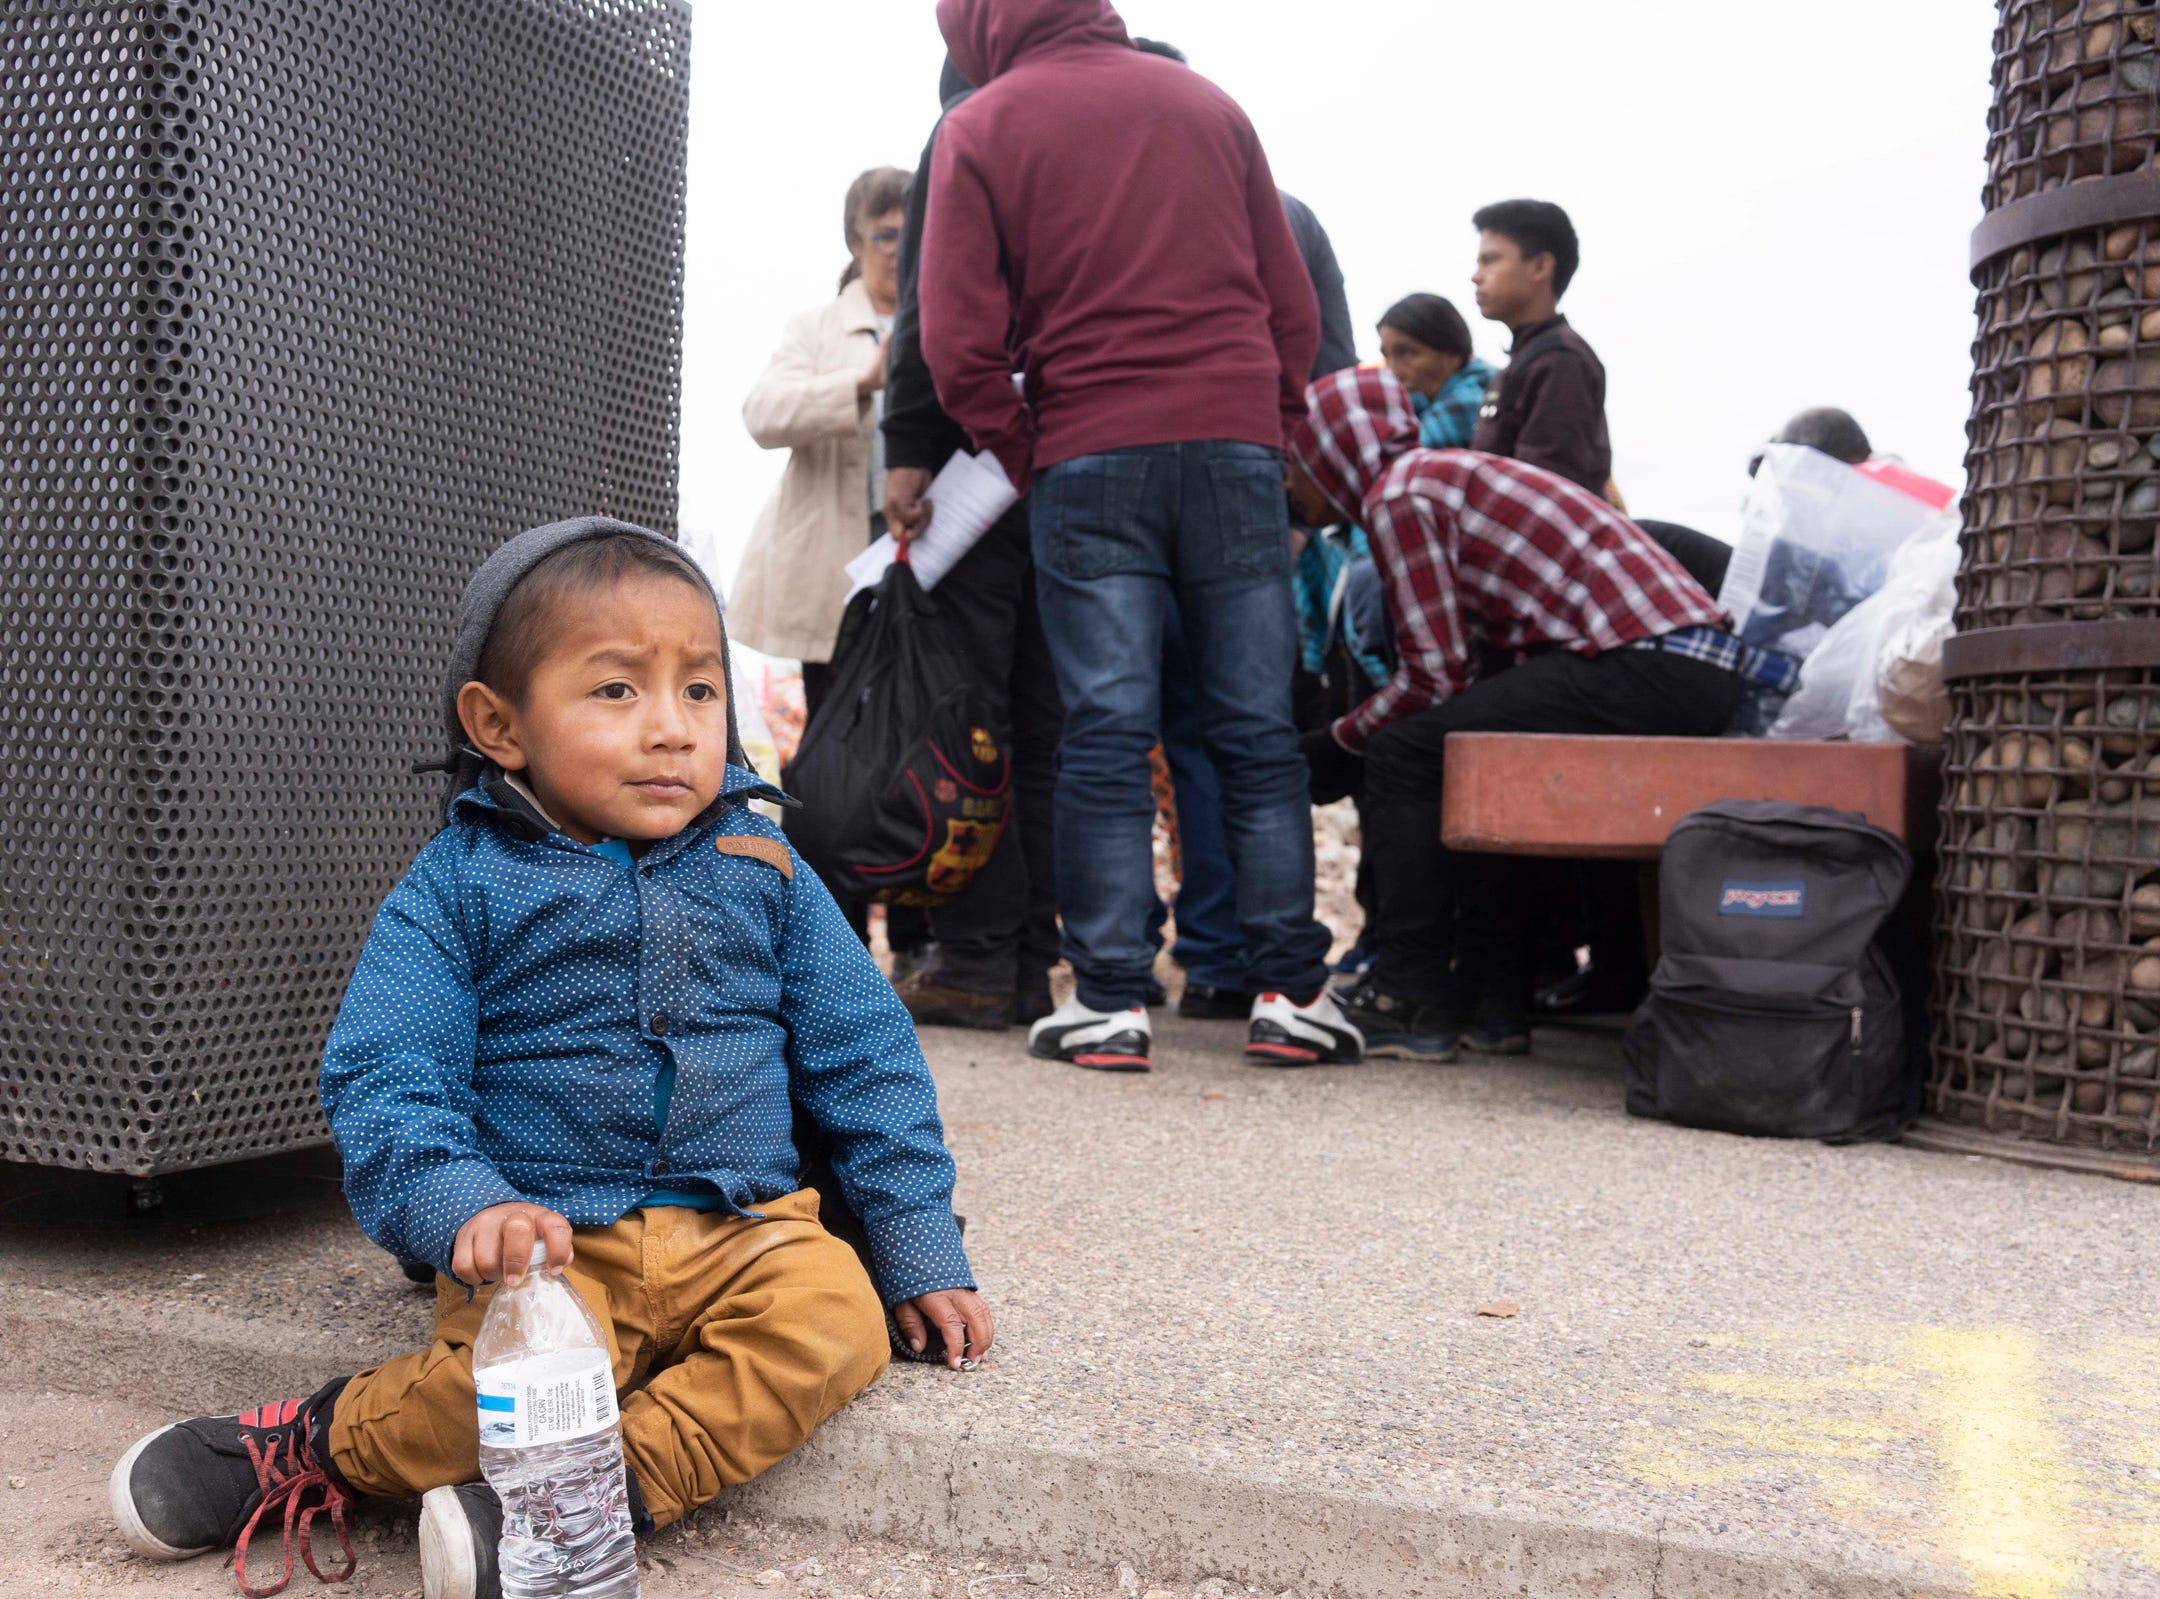 Dozens of Central American migrants are dropped off at a Phoenix Greyhound bus station by ICE federal officials while a group of volunteers tries to help them on March 8, 2019. Many churches and organizations are running out of resources to help the mingrants.